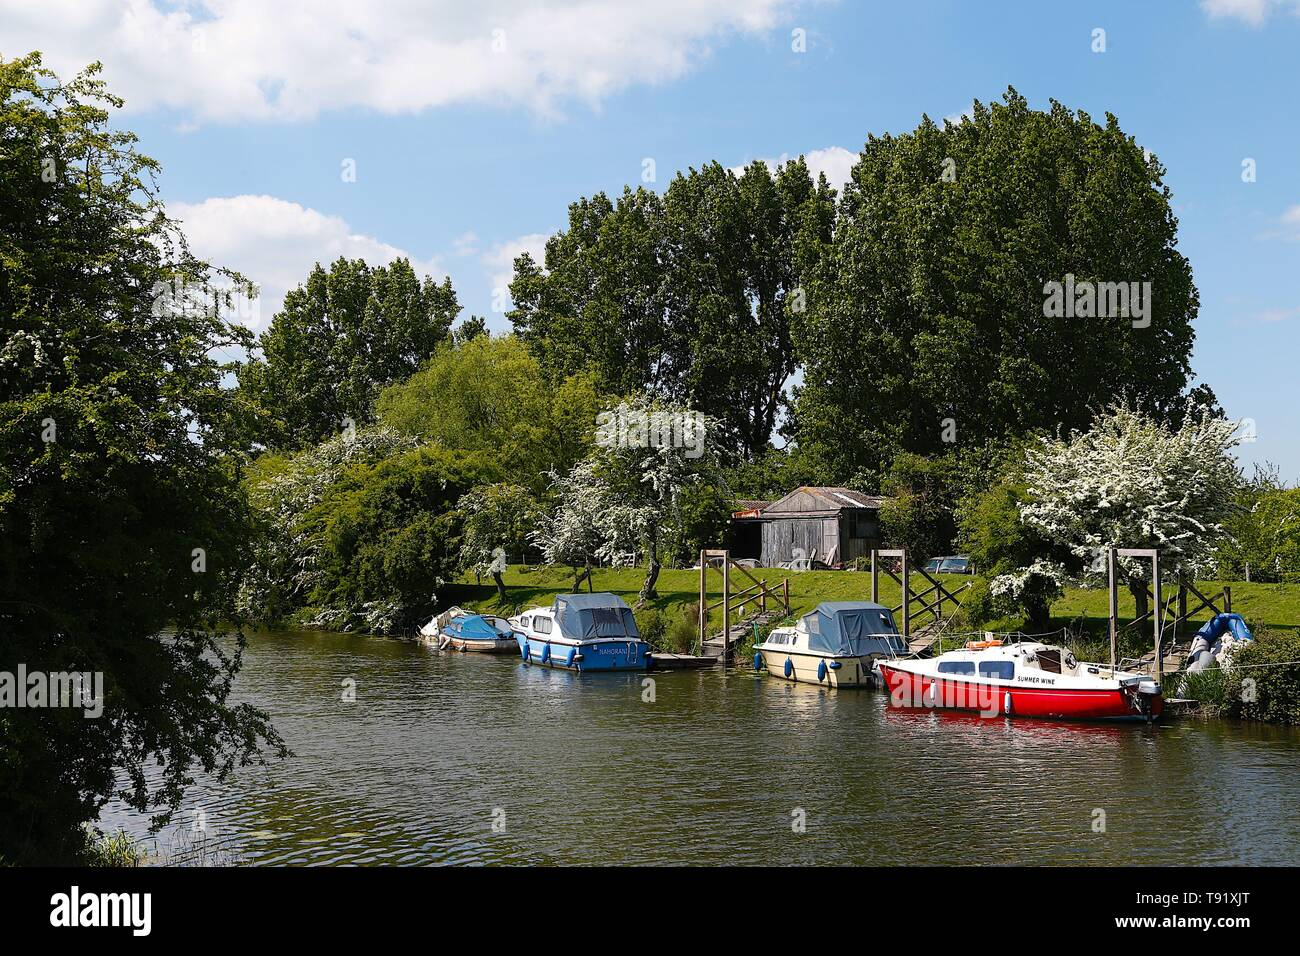 Near Iden village, East Sussex, UK. 16 May, 2019. UK Weather: A beautiful sunny afternoon in the rural setting near Iden, a village mentioned in the doomsday book. Lots of boats sit moored on the River Rother with tranquil waters and only a slight breeze in the air. Photo Credit: Paul Lawrenson/Alamy Live News - Stock Image